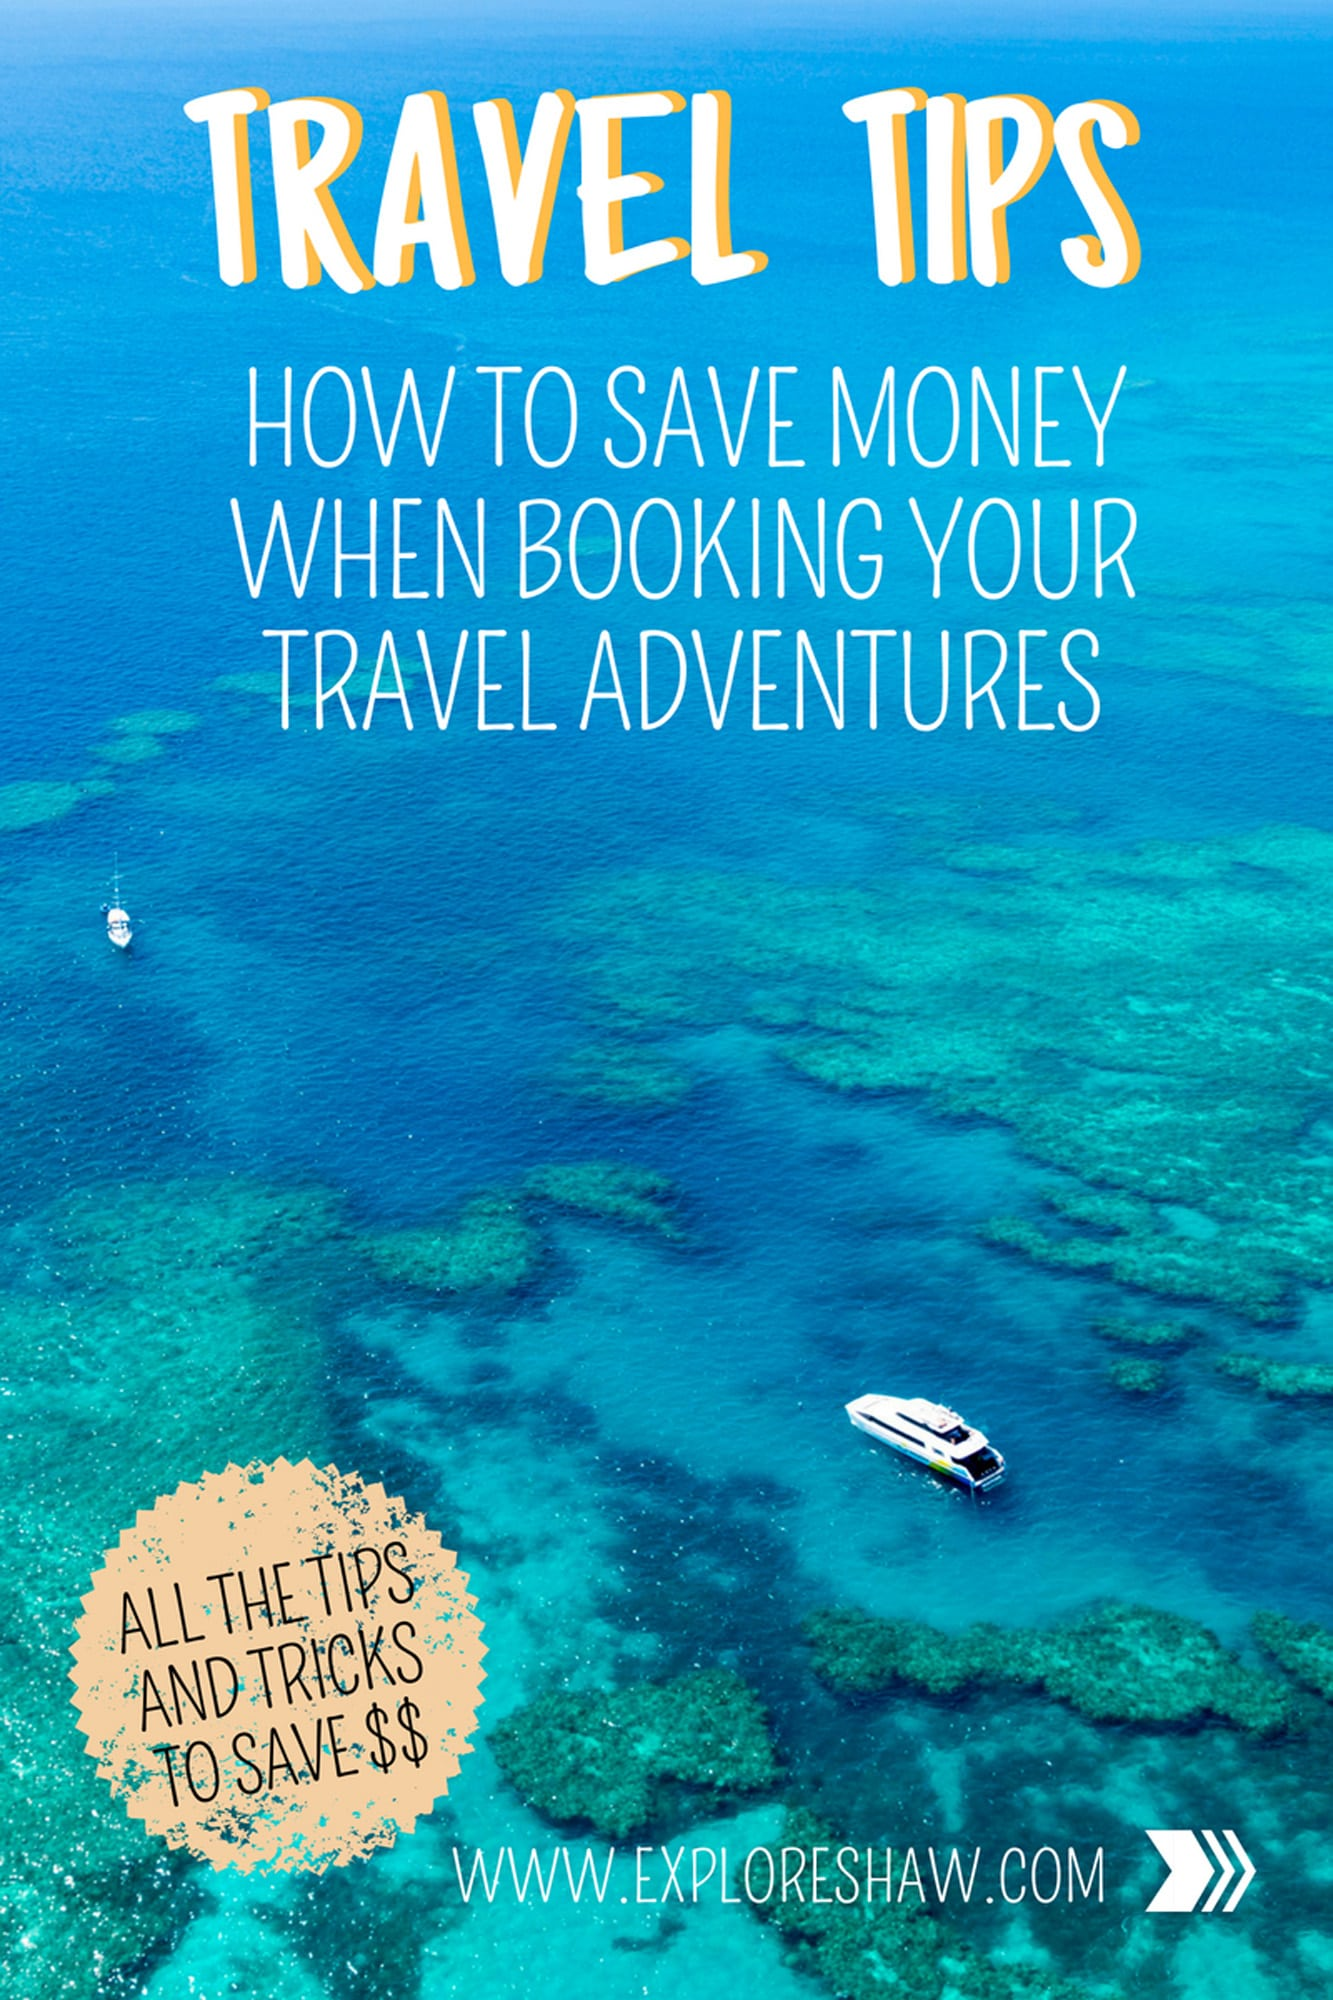 HOW TO SAVE MONEY WHEN BOOKING YOUR TRAVEL ADVENTURES